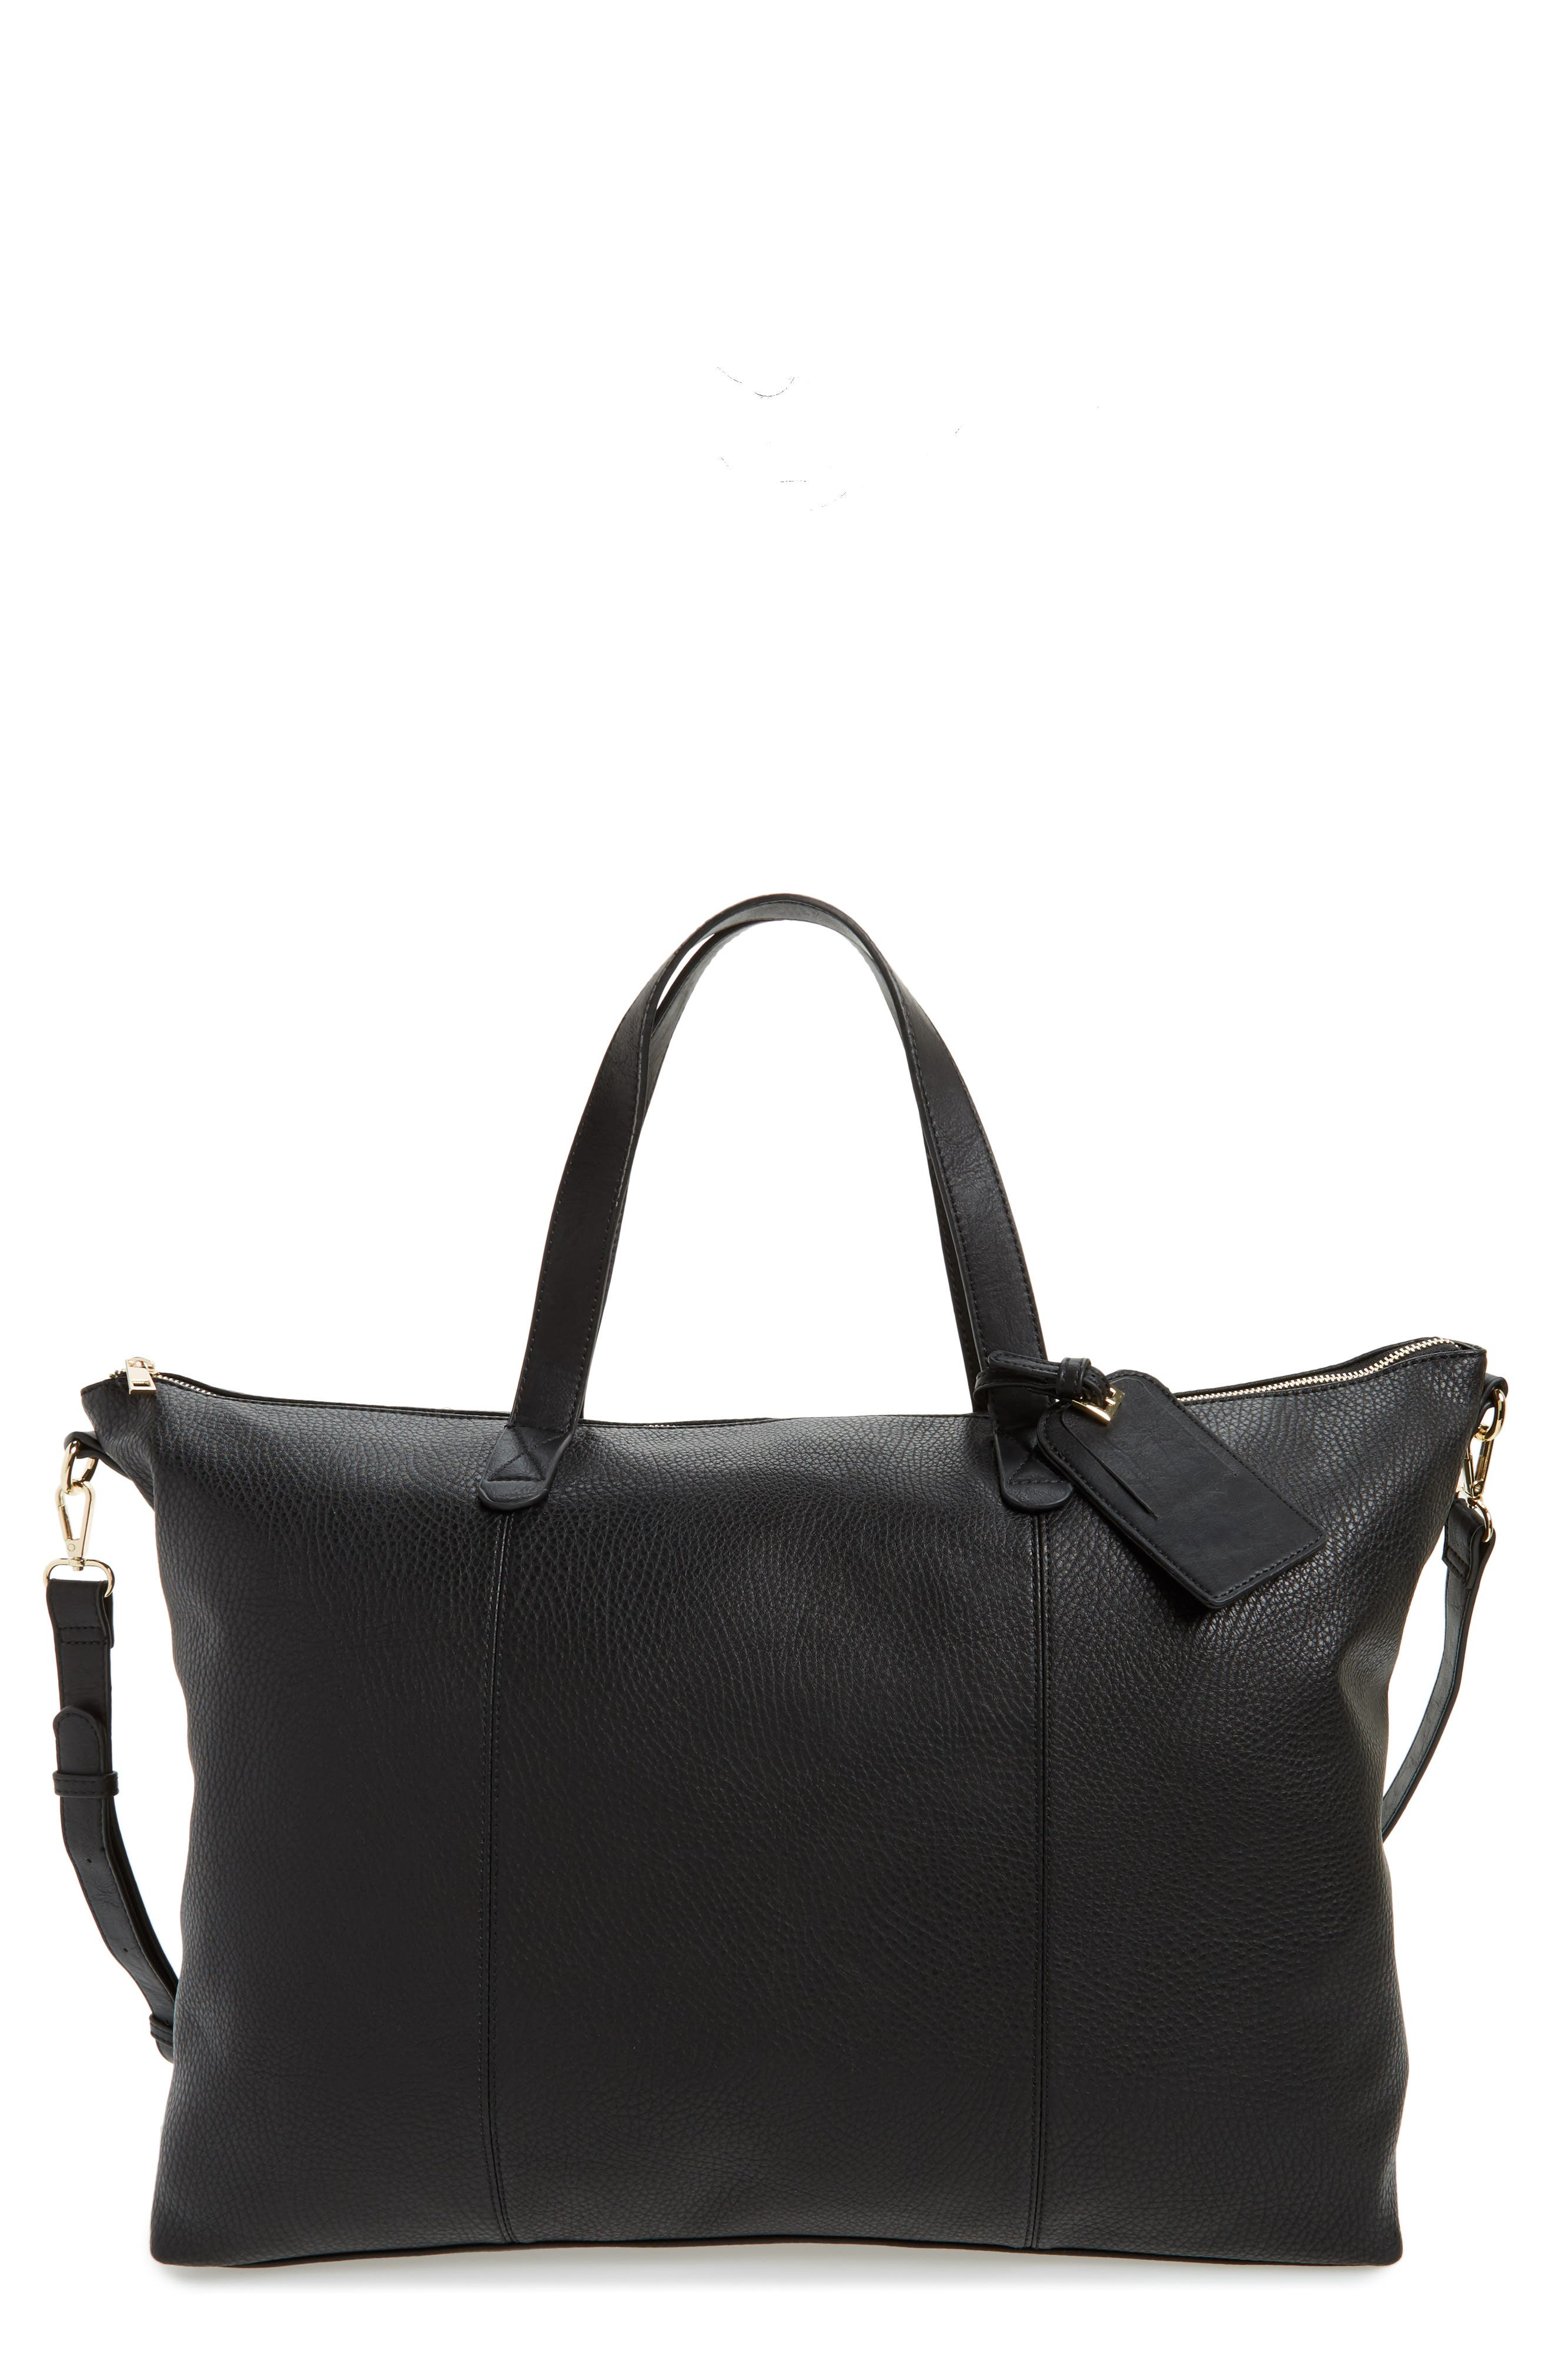 Alternate Image 1 Selected - Sole Society Candice Oversize Travel Tote